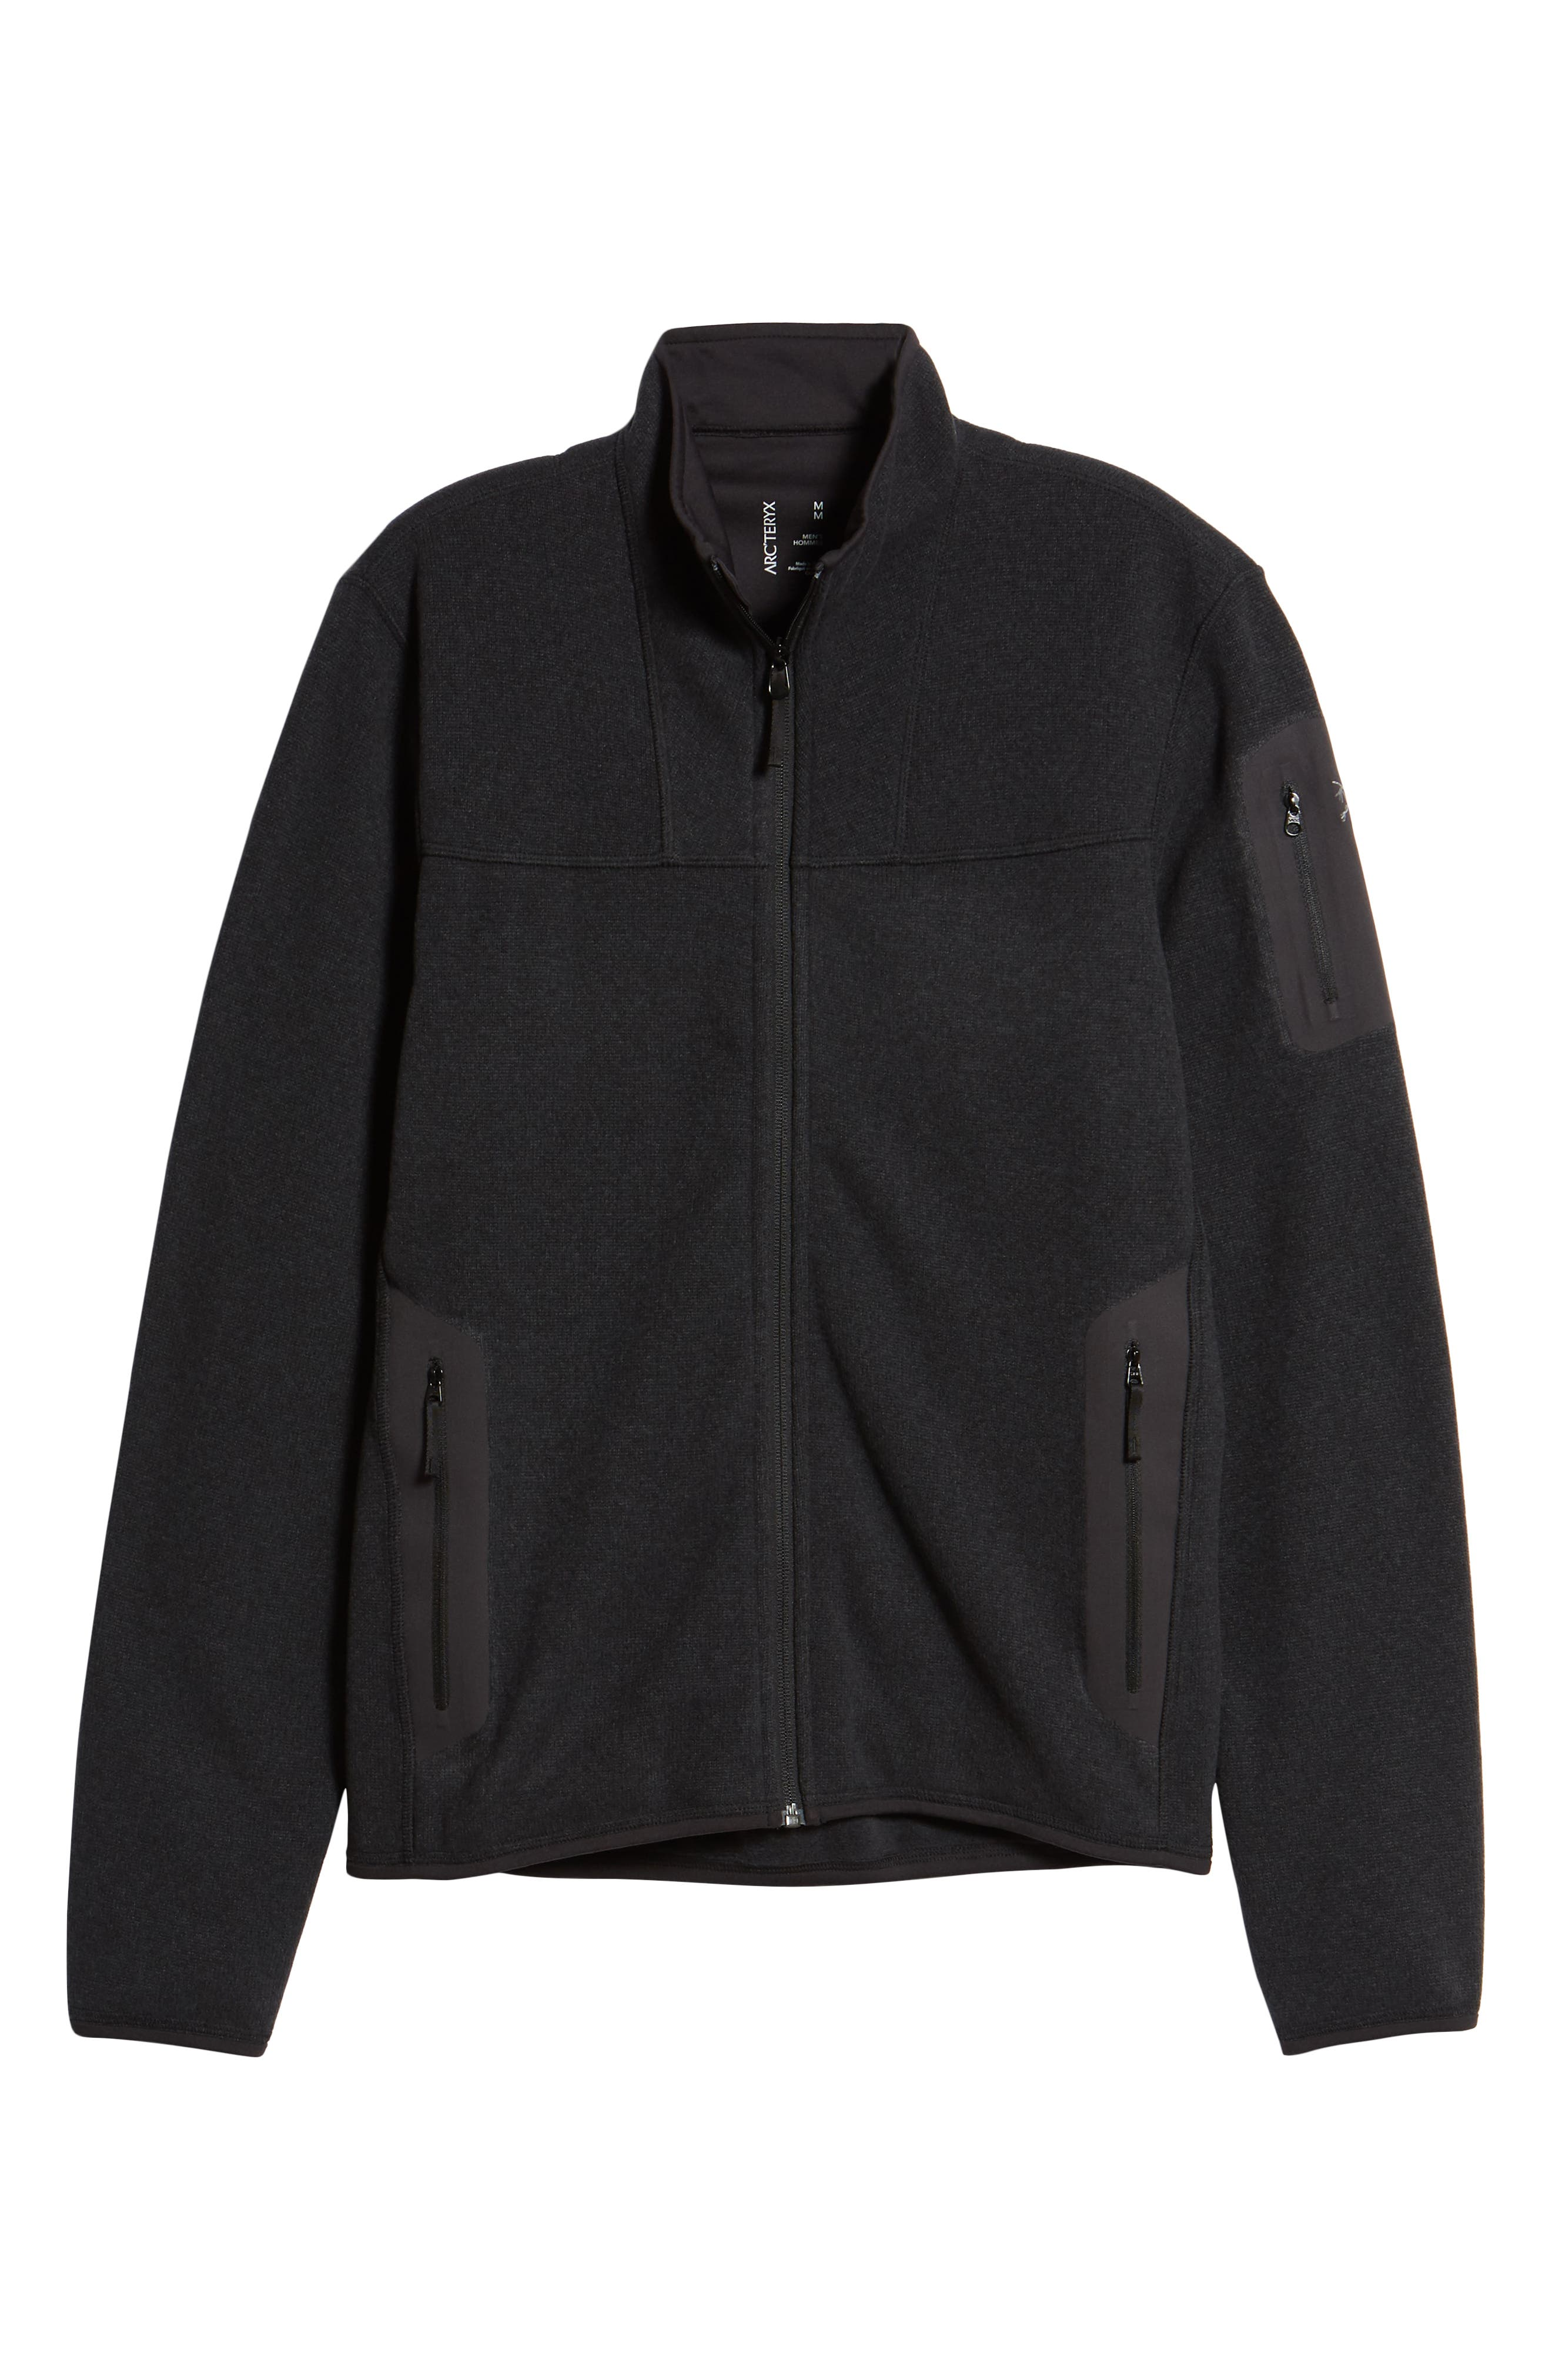 'Covert' Relaxed Fit Technical Fleece Zip Jacket,                             Alternate thumbnail 6, color,                             BLACK HEATHER